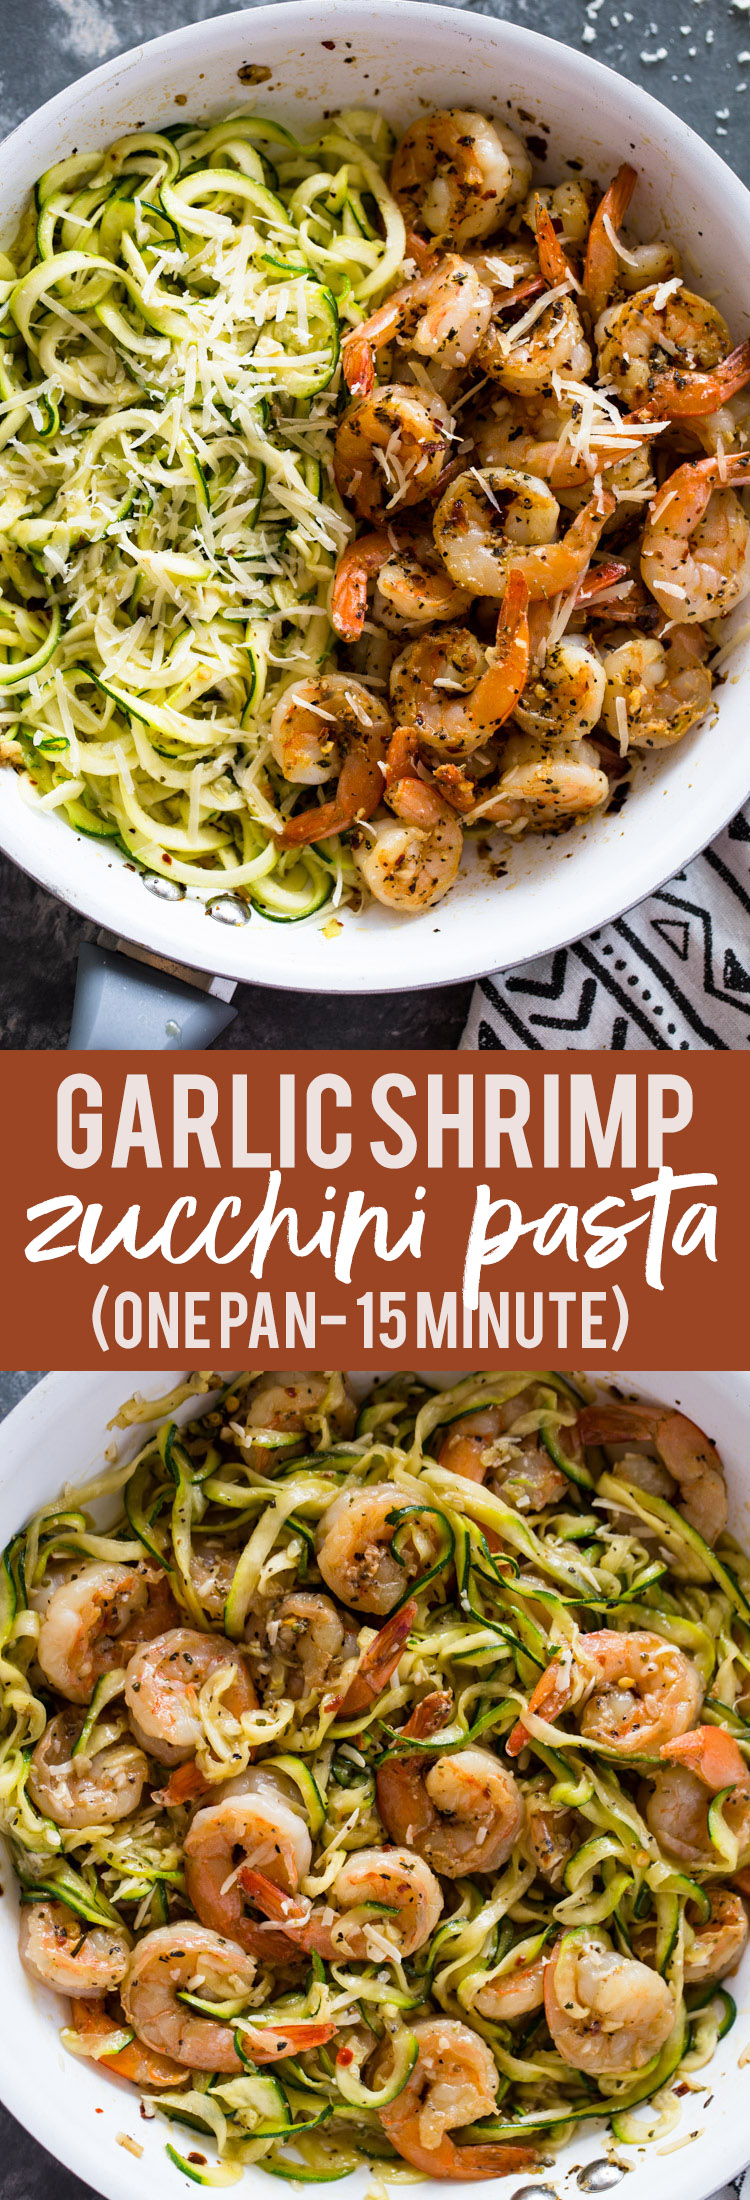 15 minute Garlic Shrimp Zucchini Pasta (One Pan)